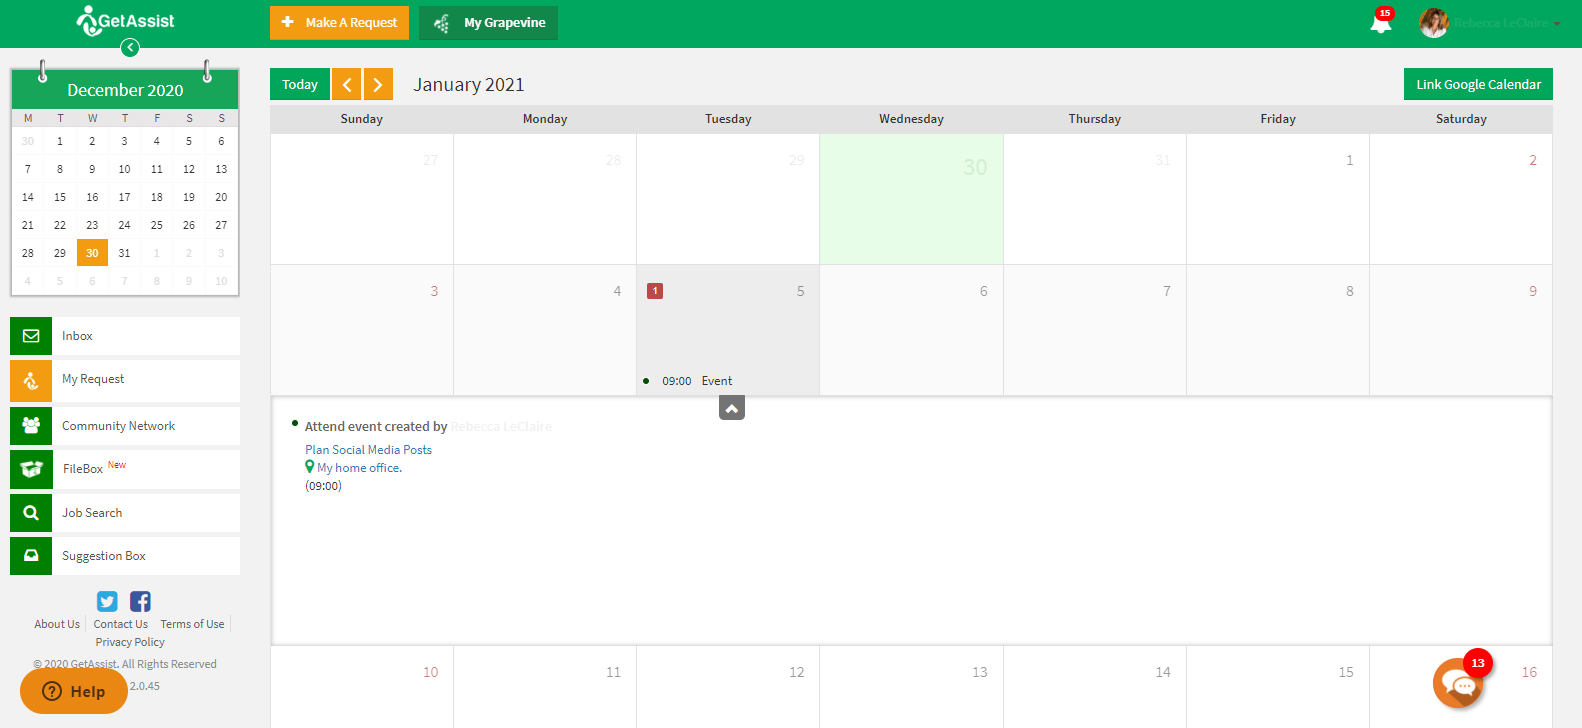 shared calendar to schedule tasks with team